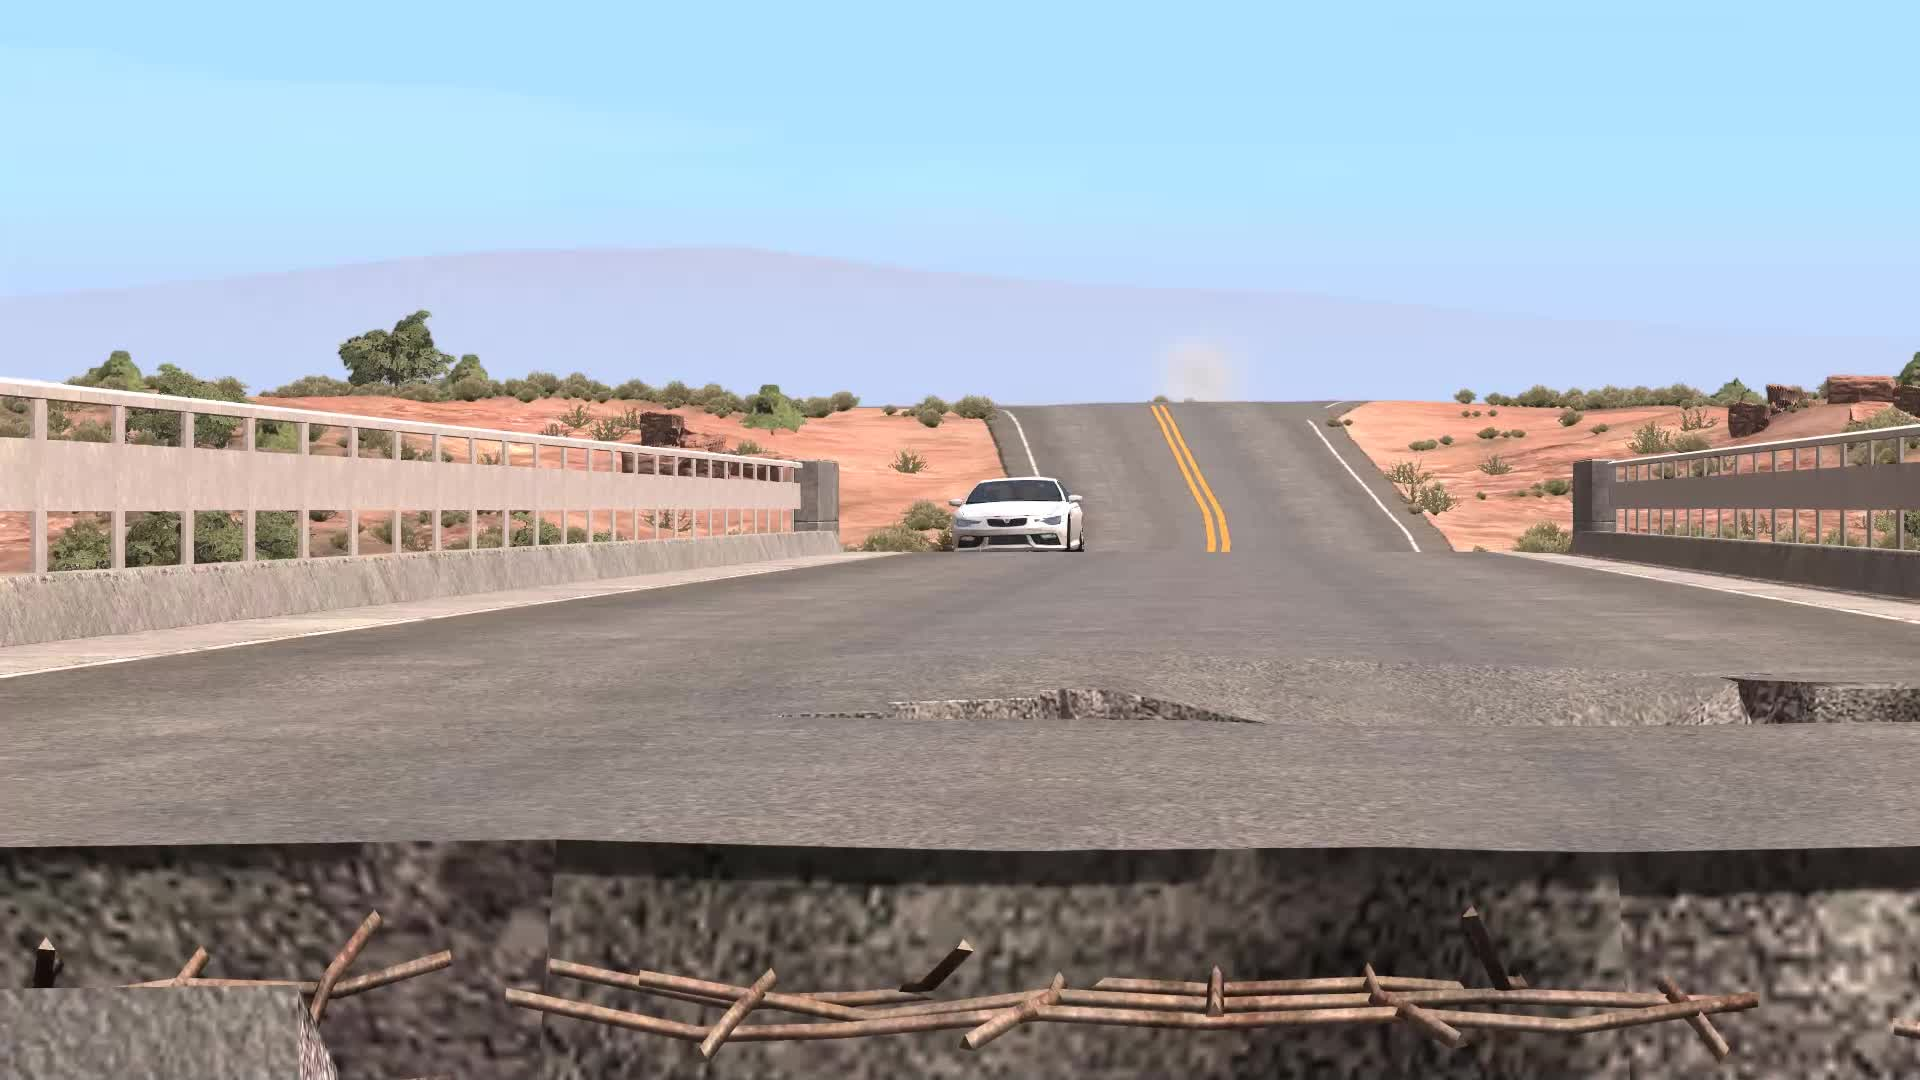 BeamNG, Parking stunt, Serzari, Stunt driving, BeamNG Broken Bridge Parking Stunt GIFs